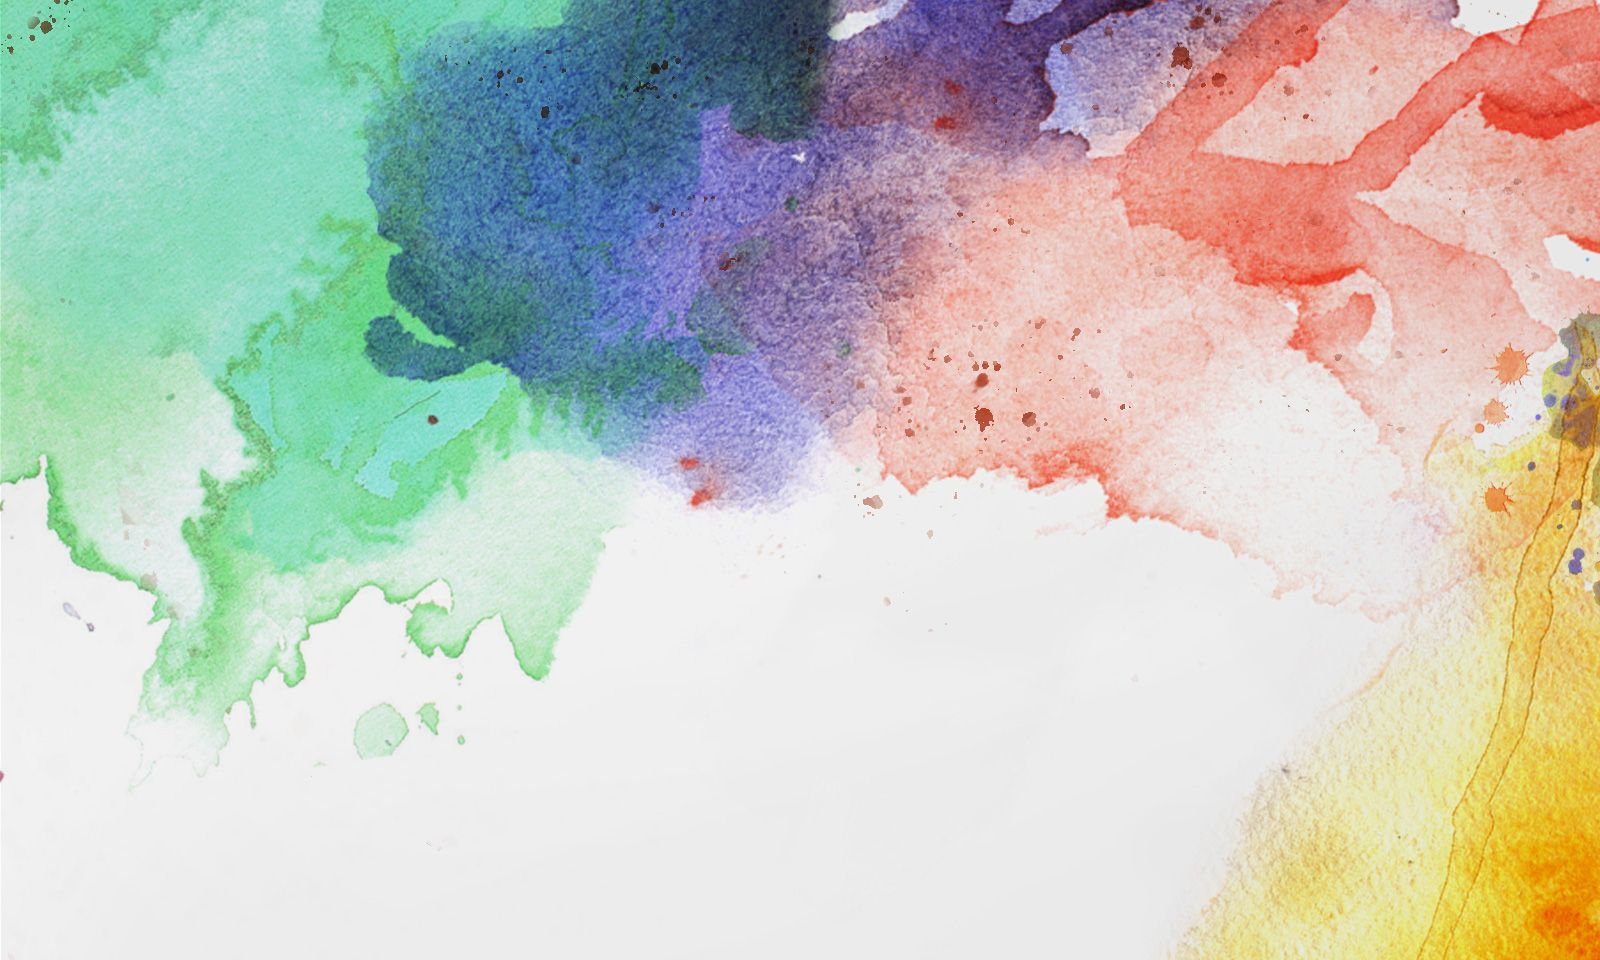 svg royalty free Watercolor splatter google search. Transparent watercolours